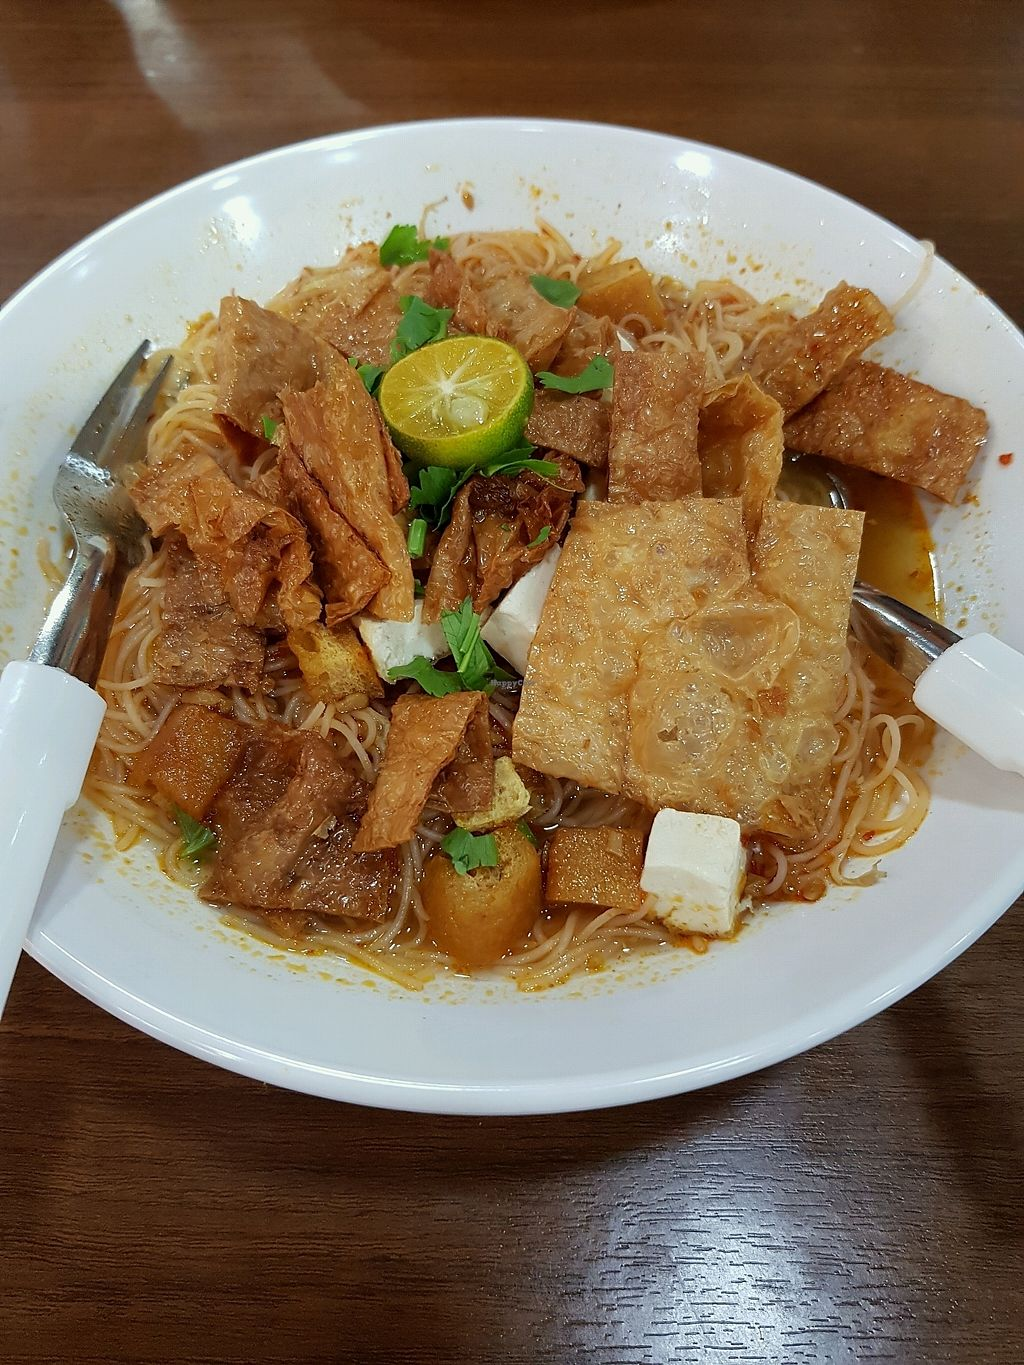 "Photo of Uncle Black Vegetarian Food  by <a href=""/members/profile/ChuaChenKok"">ChuaChenKok</a> <br/>Mee Siam <br/> January 1, 2018  - <a href='/contact/abuse/image/79429/341504'>Report</a>"